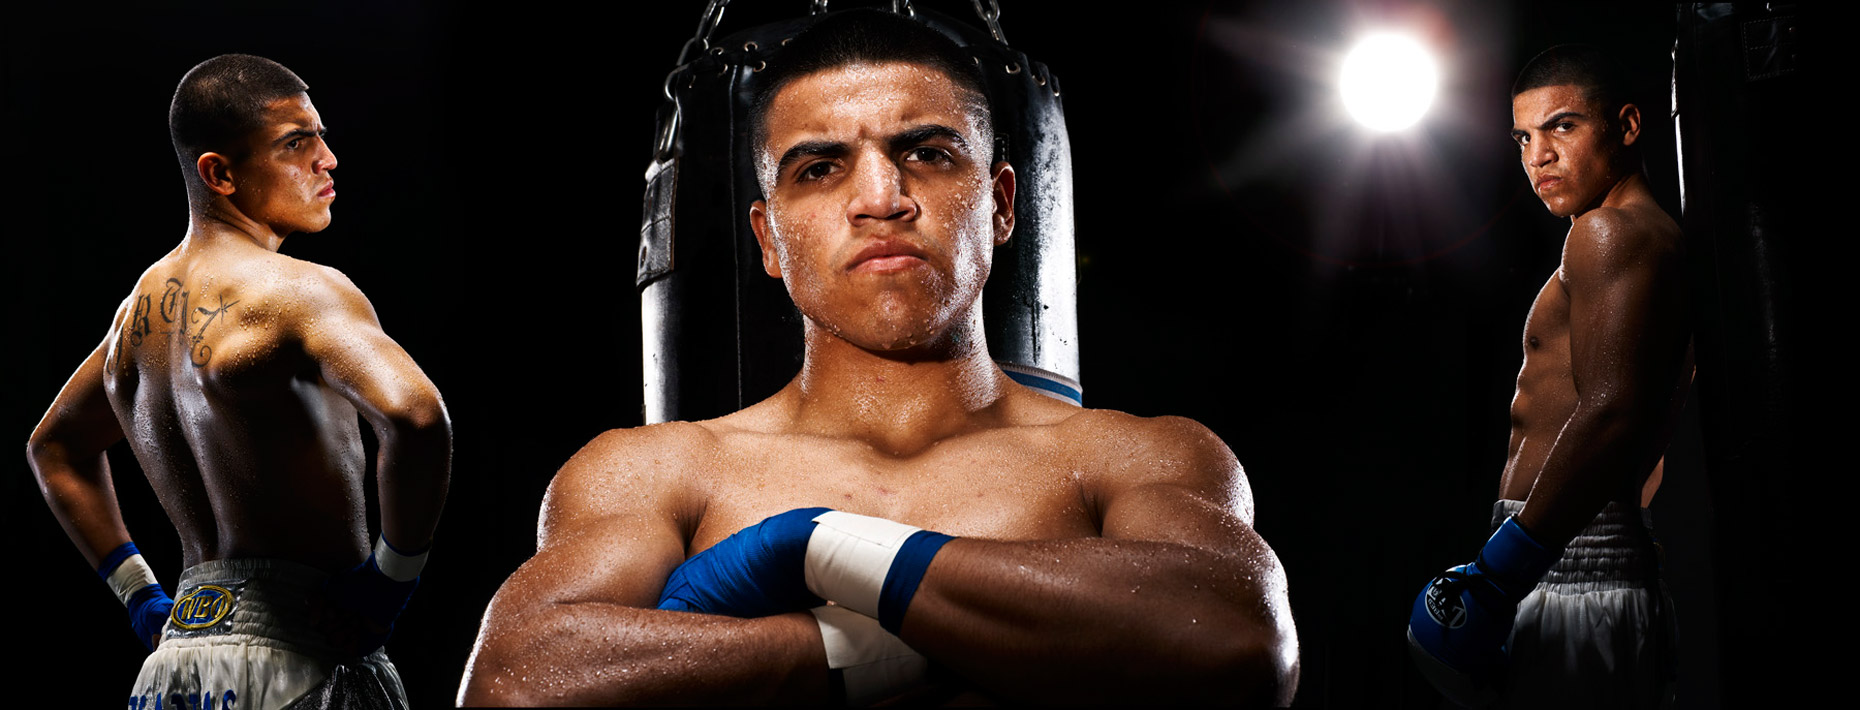 Victor Ortiz portrait for HBO boxing photo by monte isom